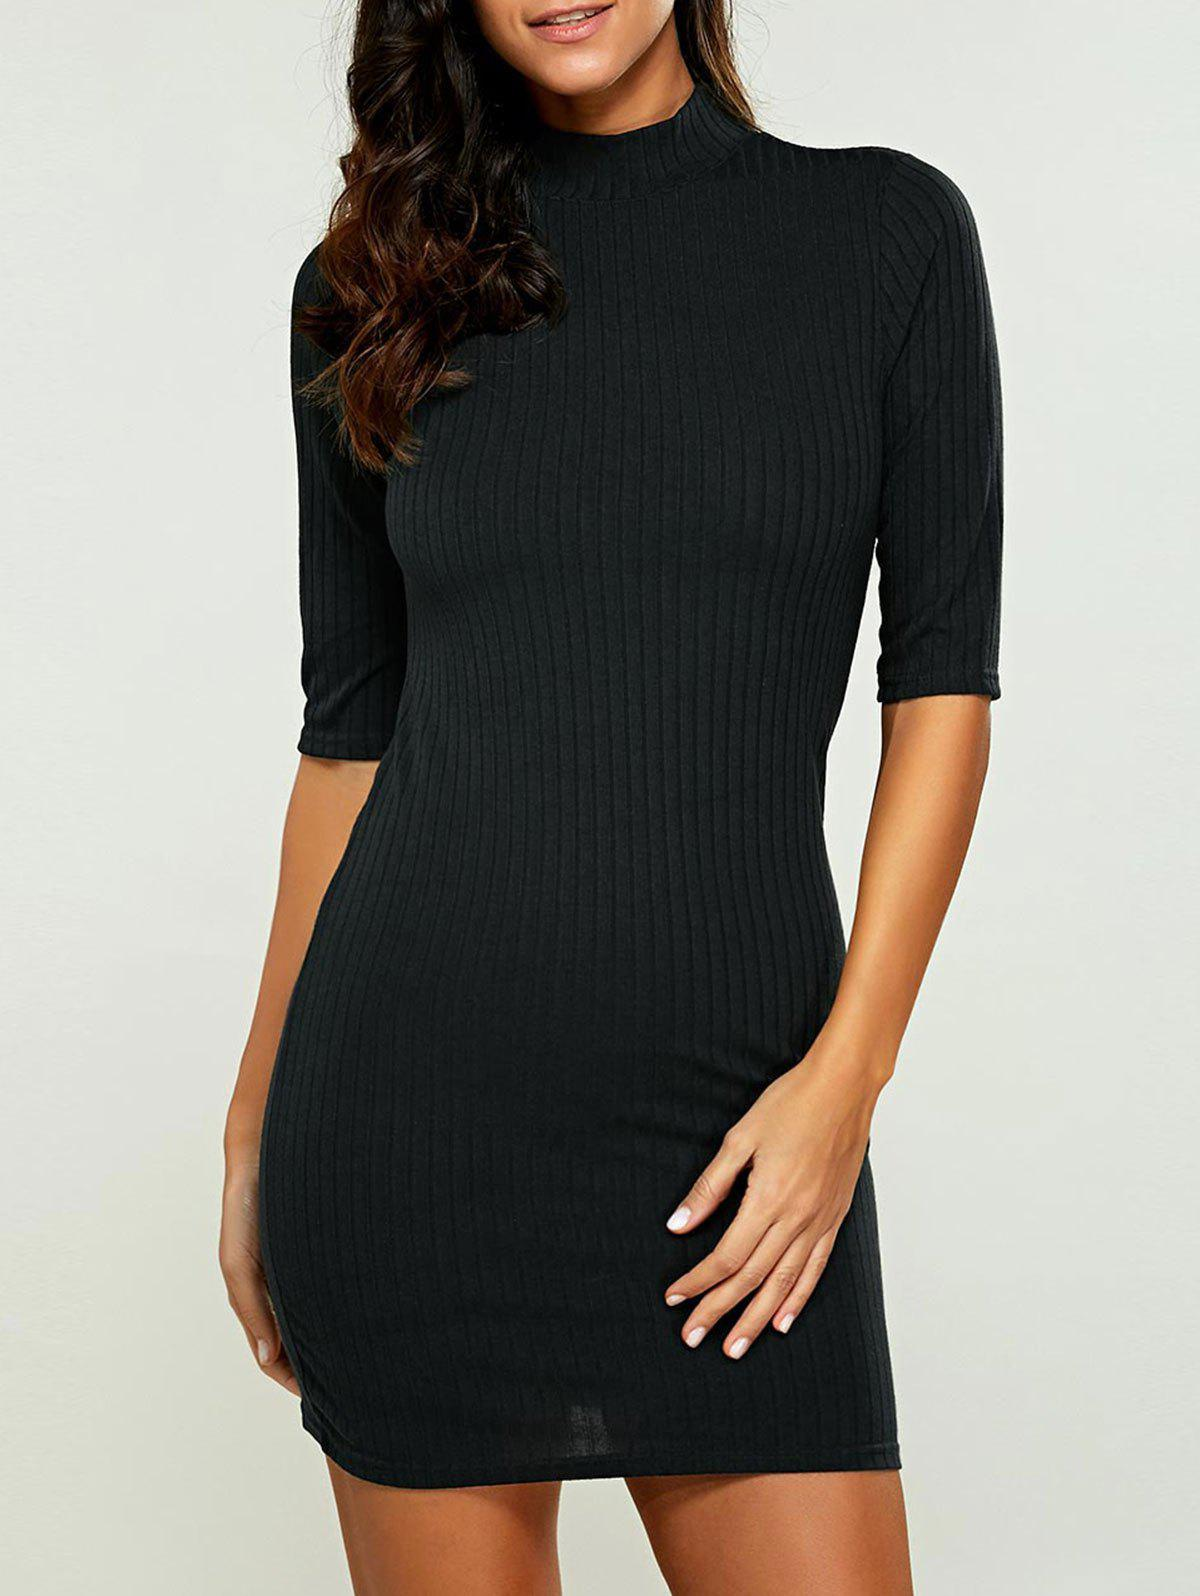 High Neck Bodycon Ribbed Knit T Shirt Dress 196366704